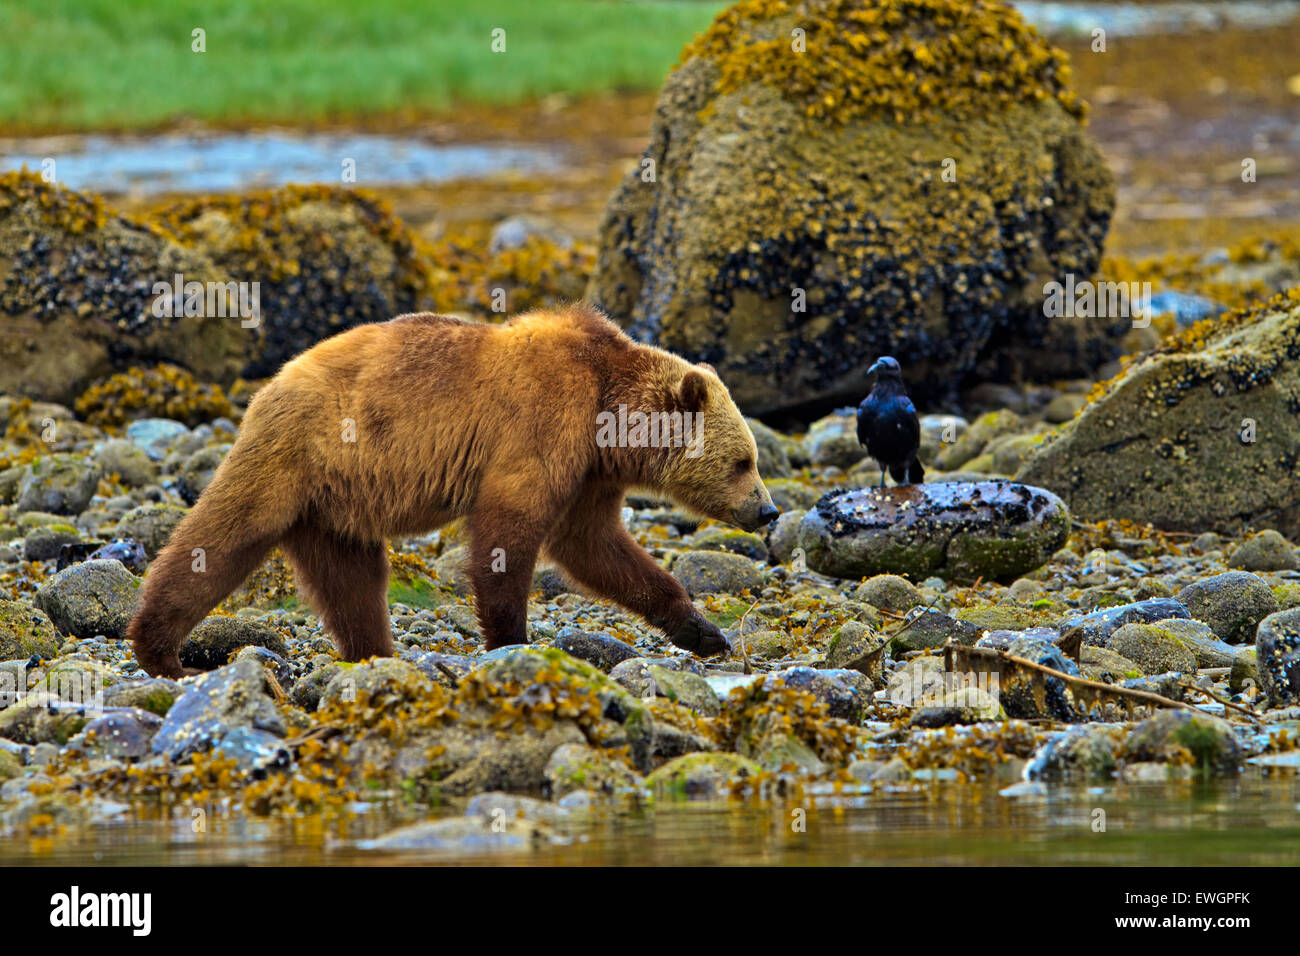 Coastal Grizzly bear and raven, searching for food at low tide on the British Columbia Mainland, Canada - Stock Image